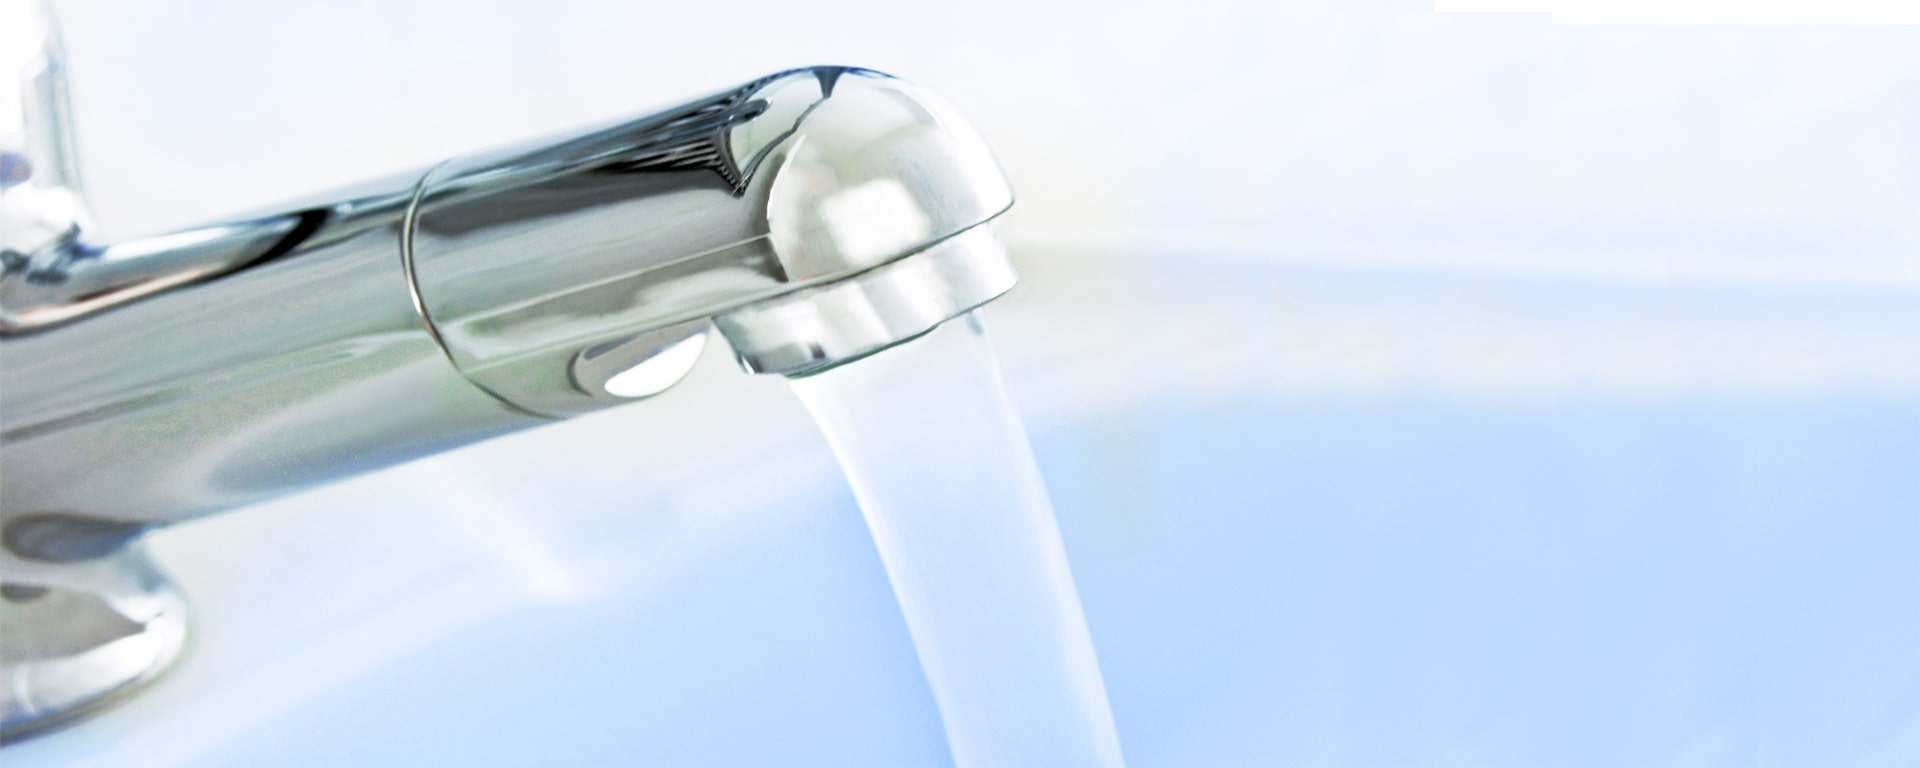 Set Up Your Plumbing Business Properly To Make Sure Business Flows